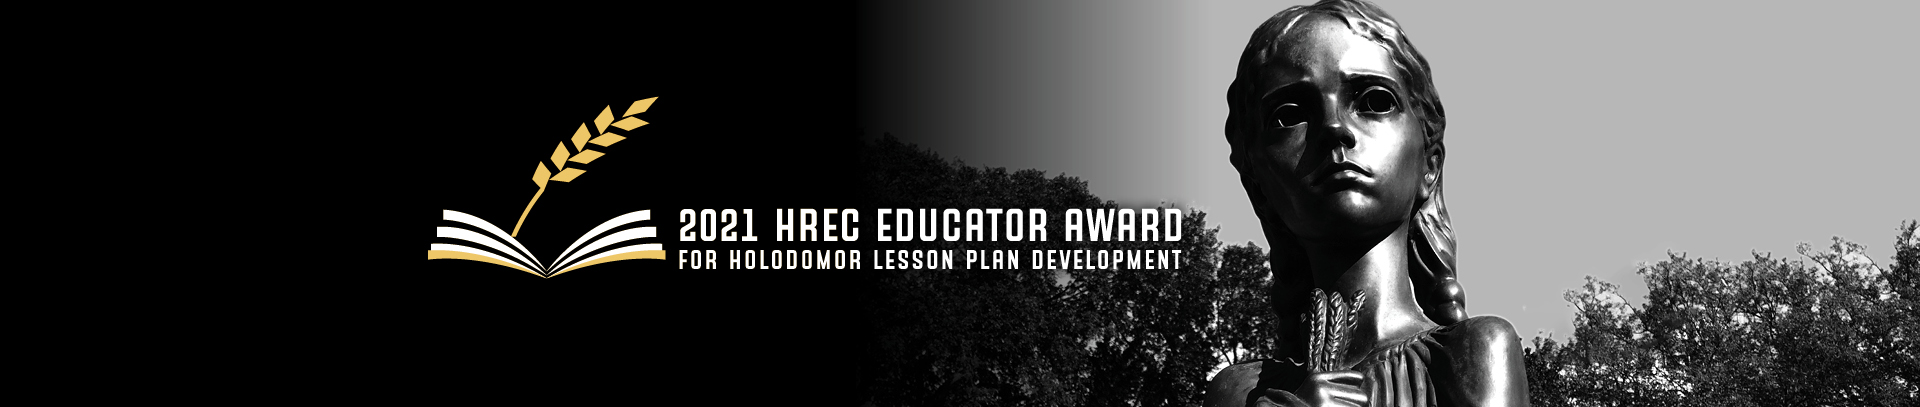 2021 HREC Educator Award for Holodomor Lesson Plan Development